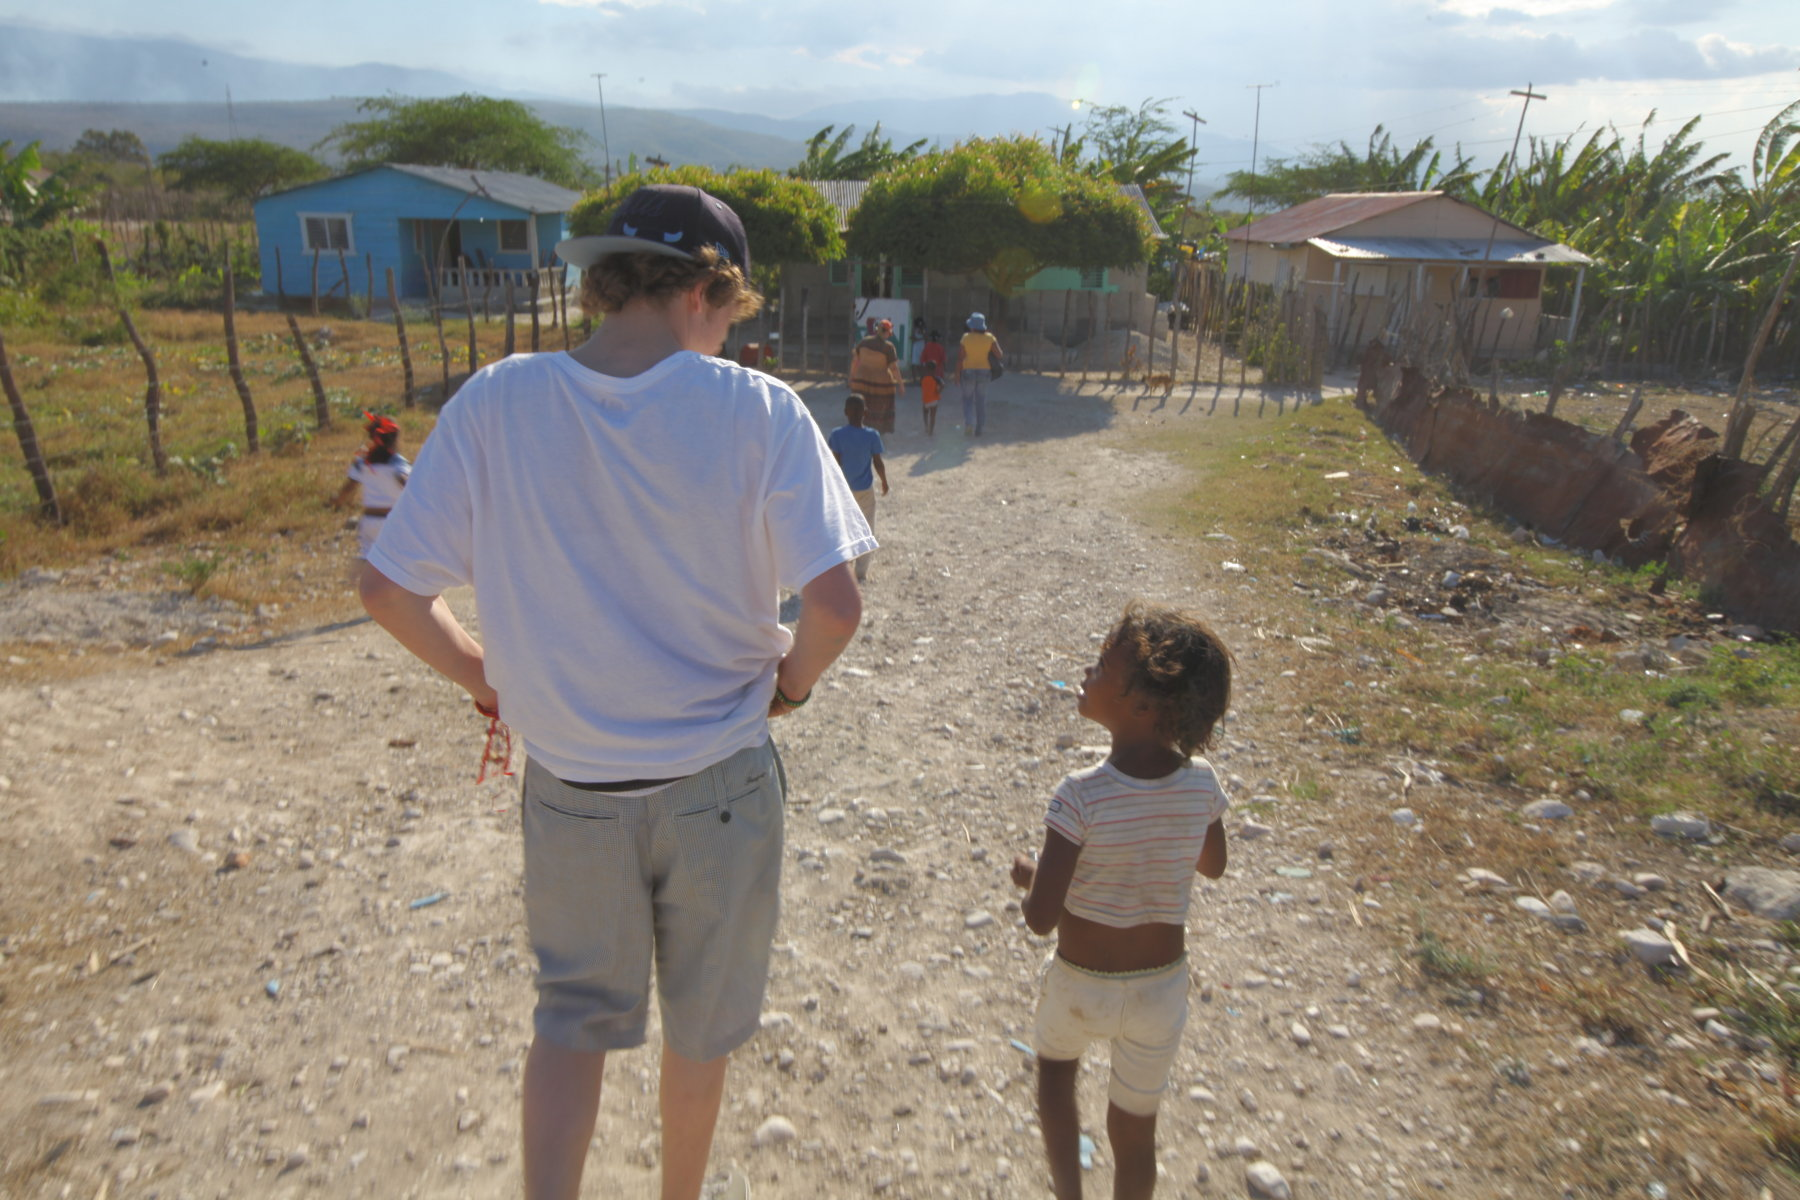 during volunteer work in the Dominican Republic : self assigned : Portland Oregon based Commercial Photographer and Filmmaker Gary Nolton